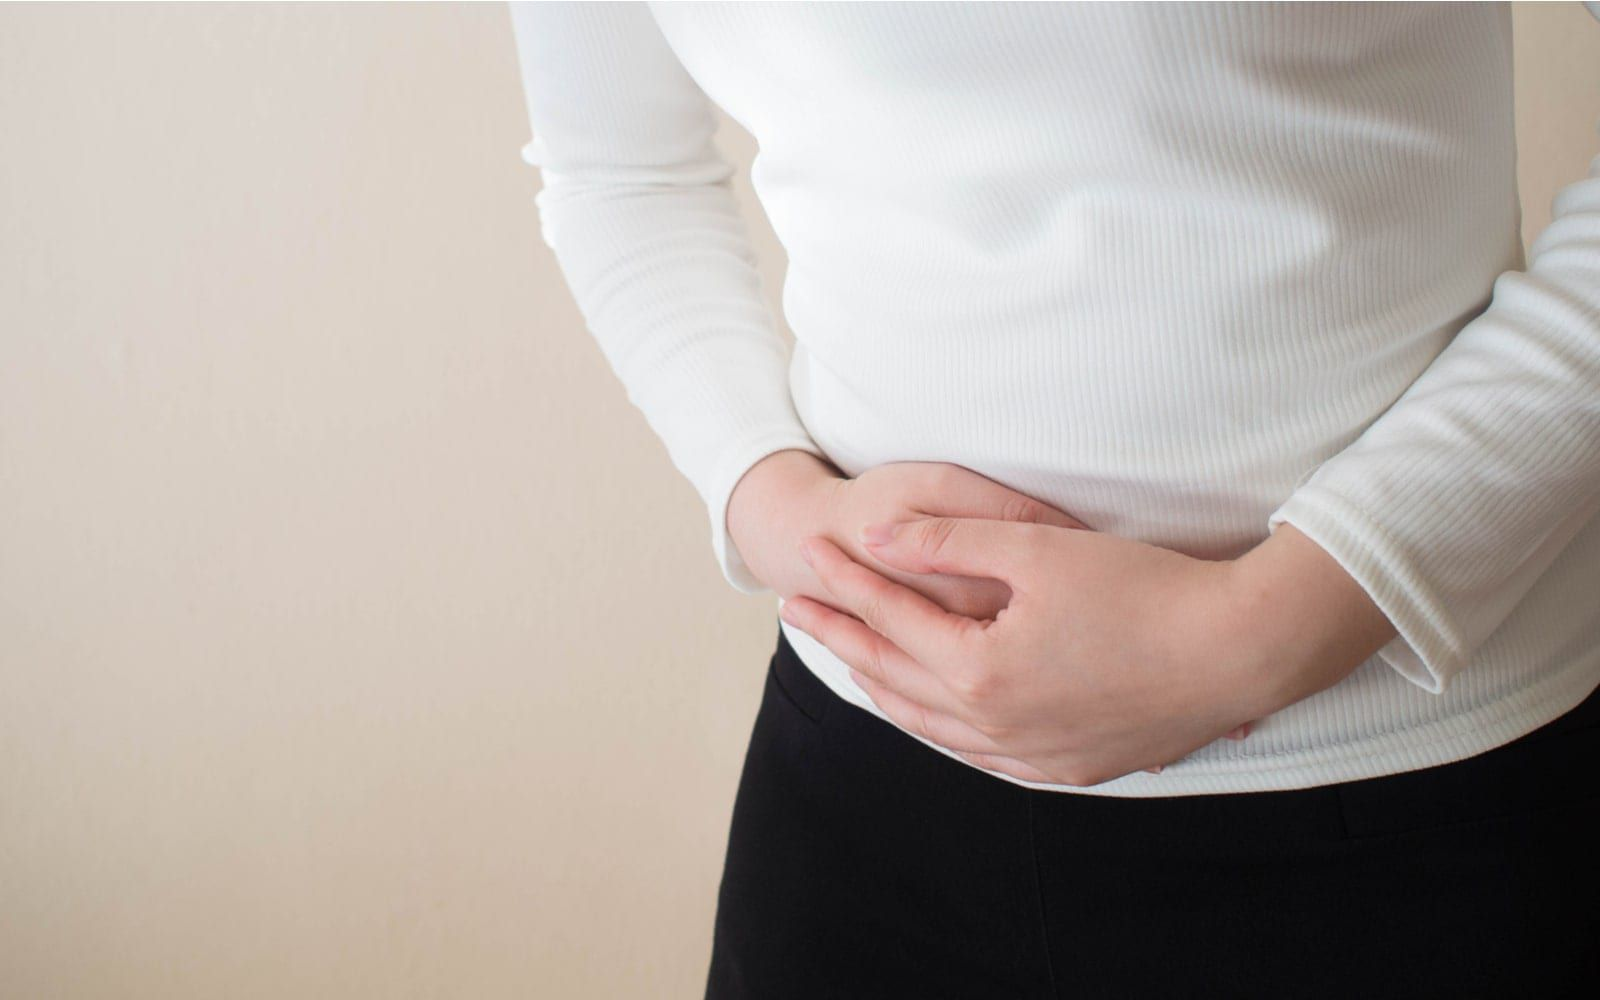 Woman clutching abdomen in pain from cysts